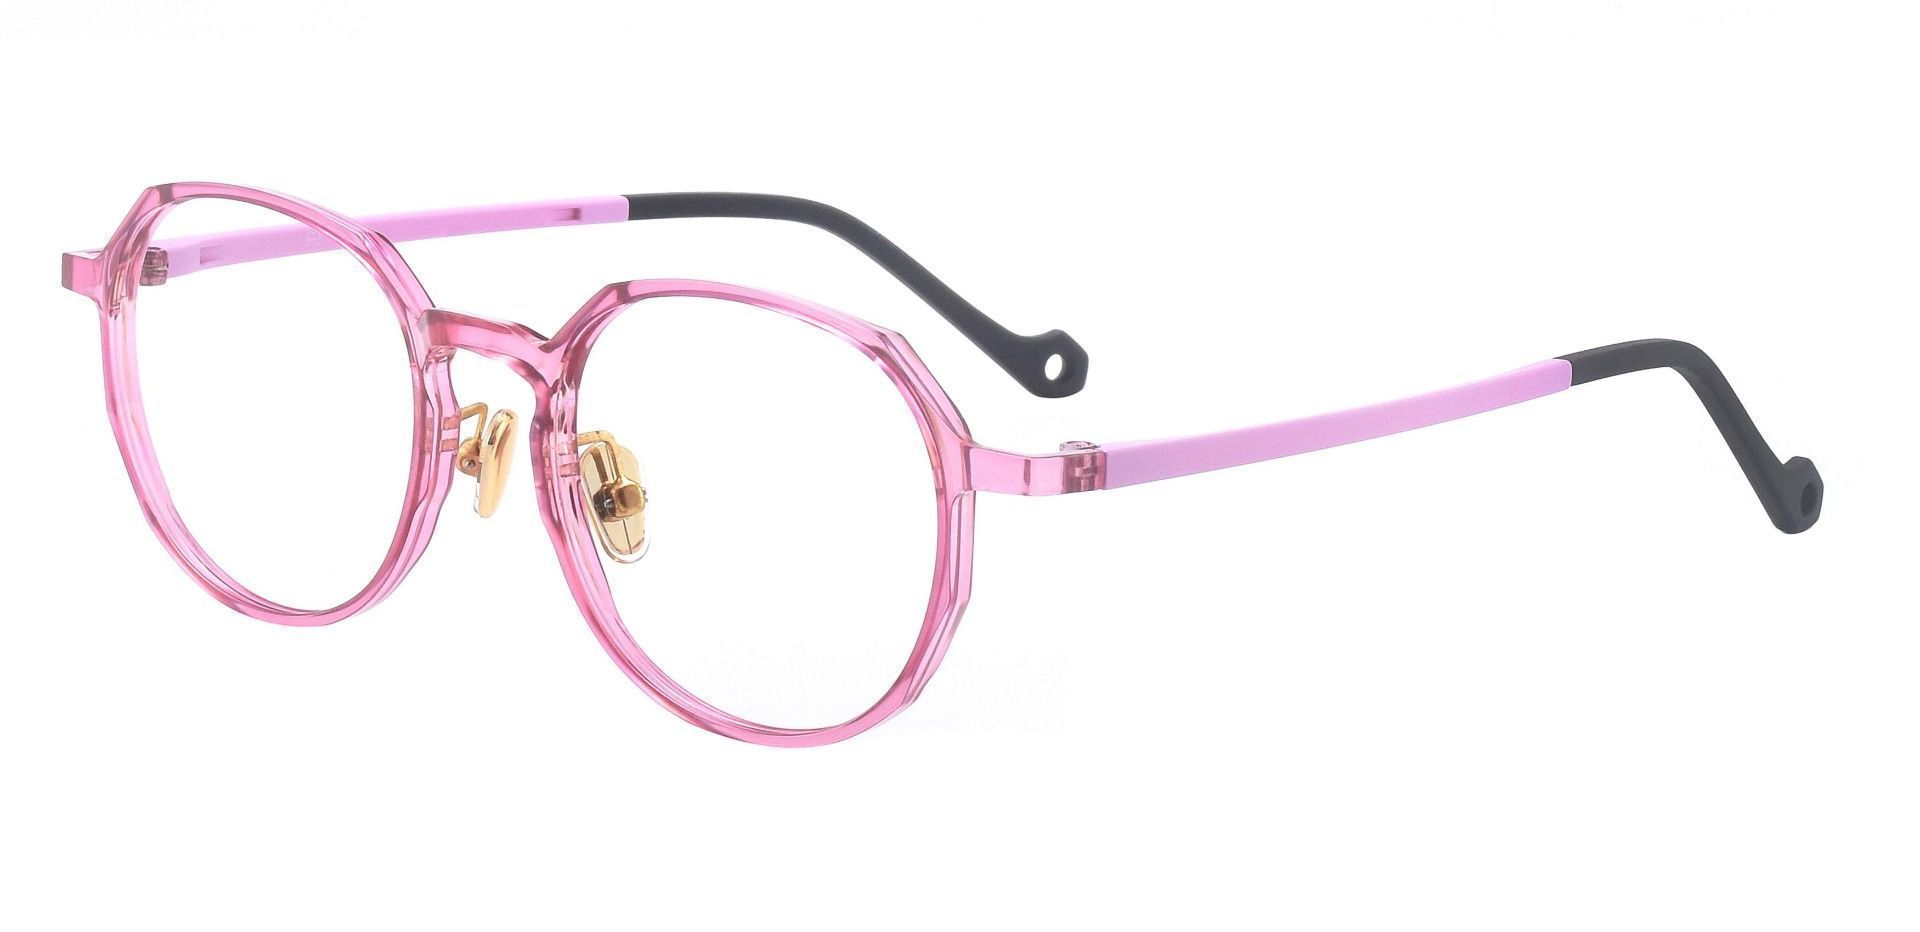 Everly Geometric Prescription Glasses - The Frame Is Pink And Black